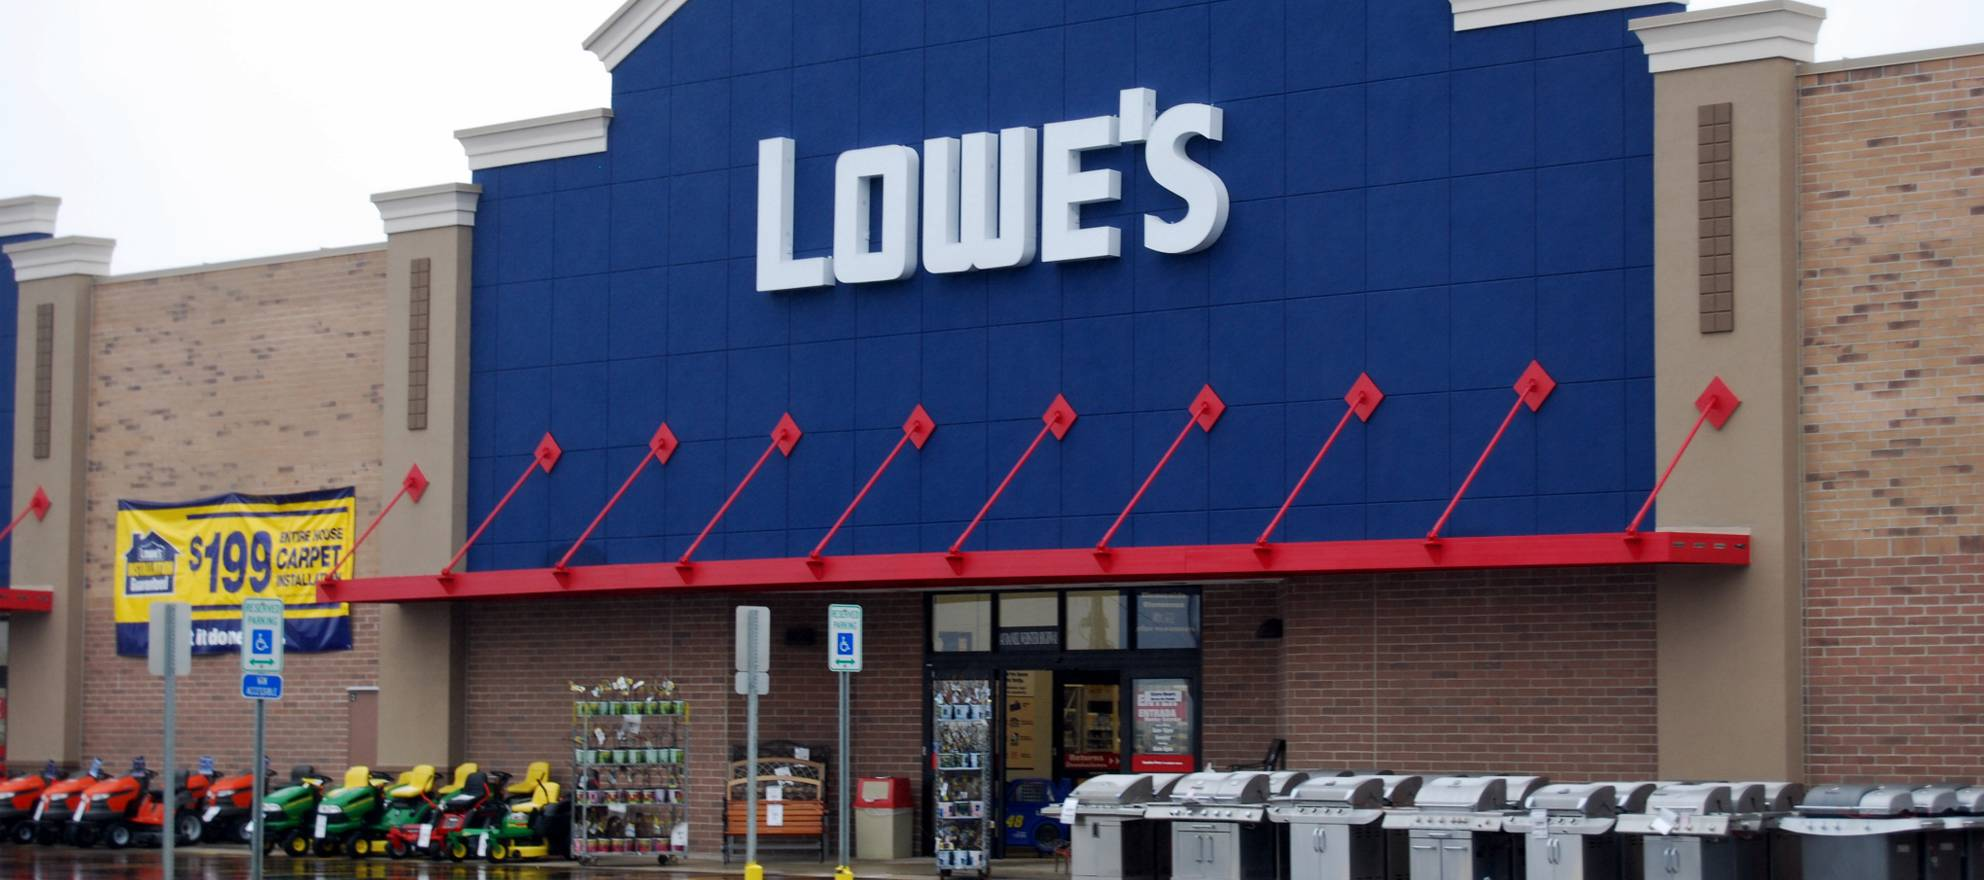 Lowe's Realtor benefits come to an end